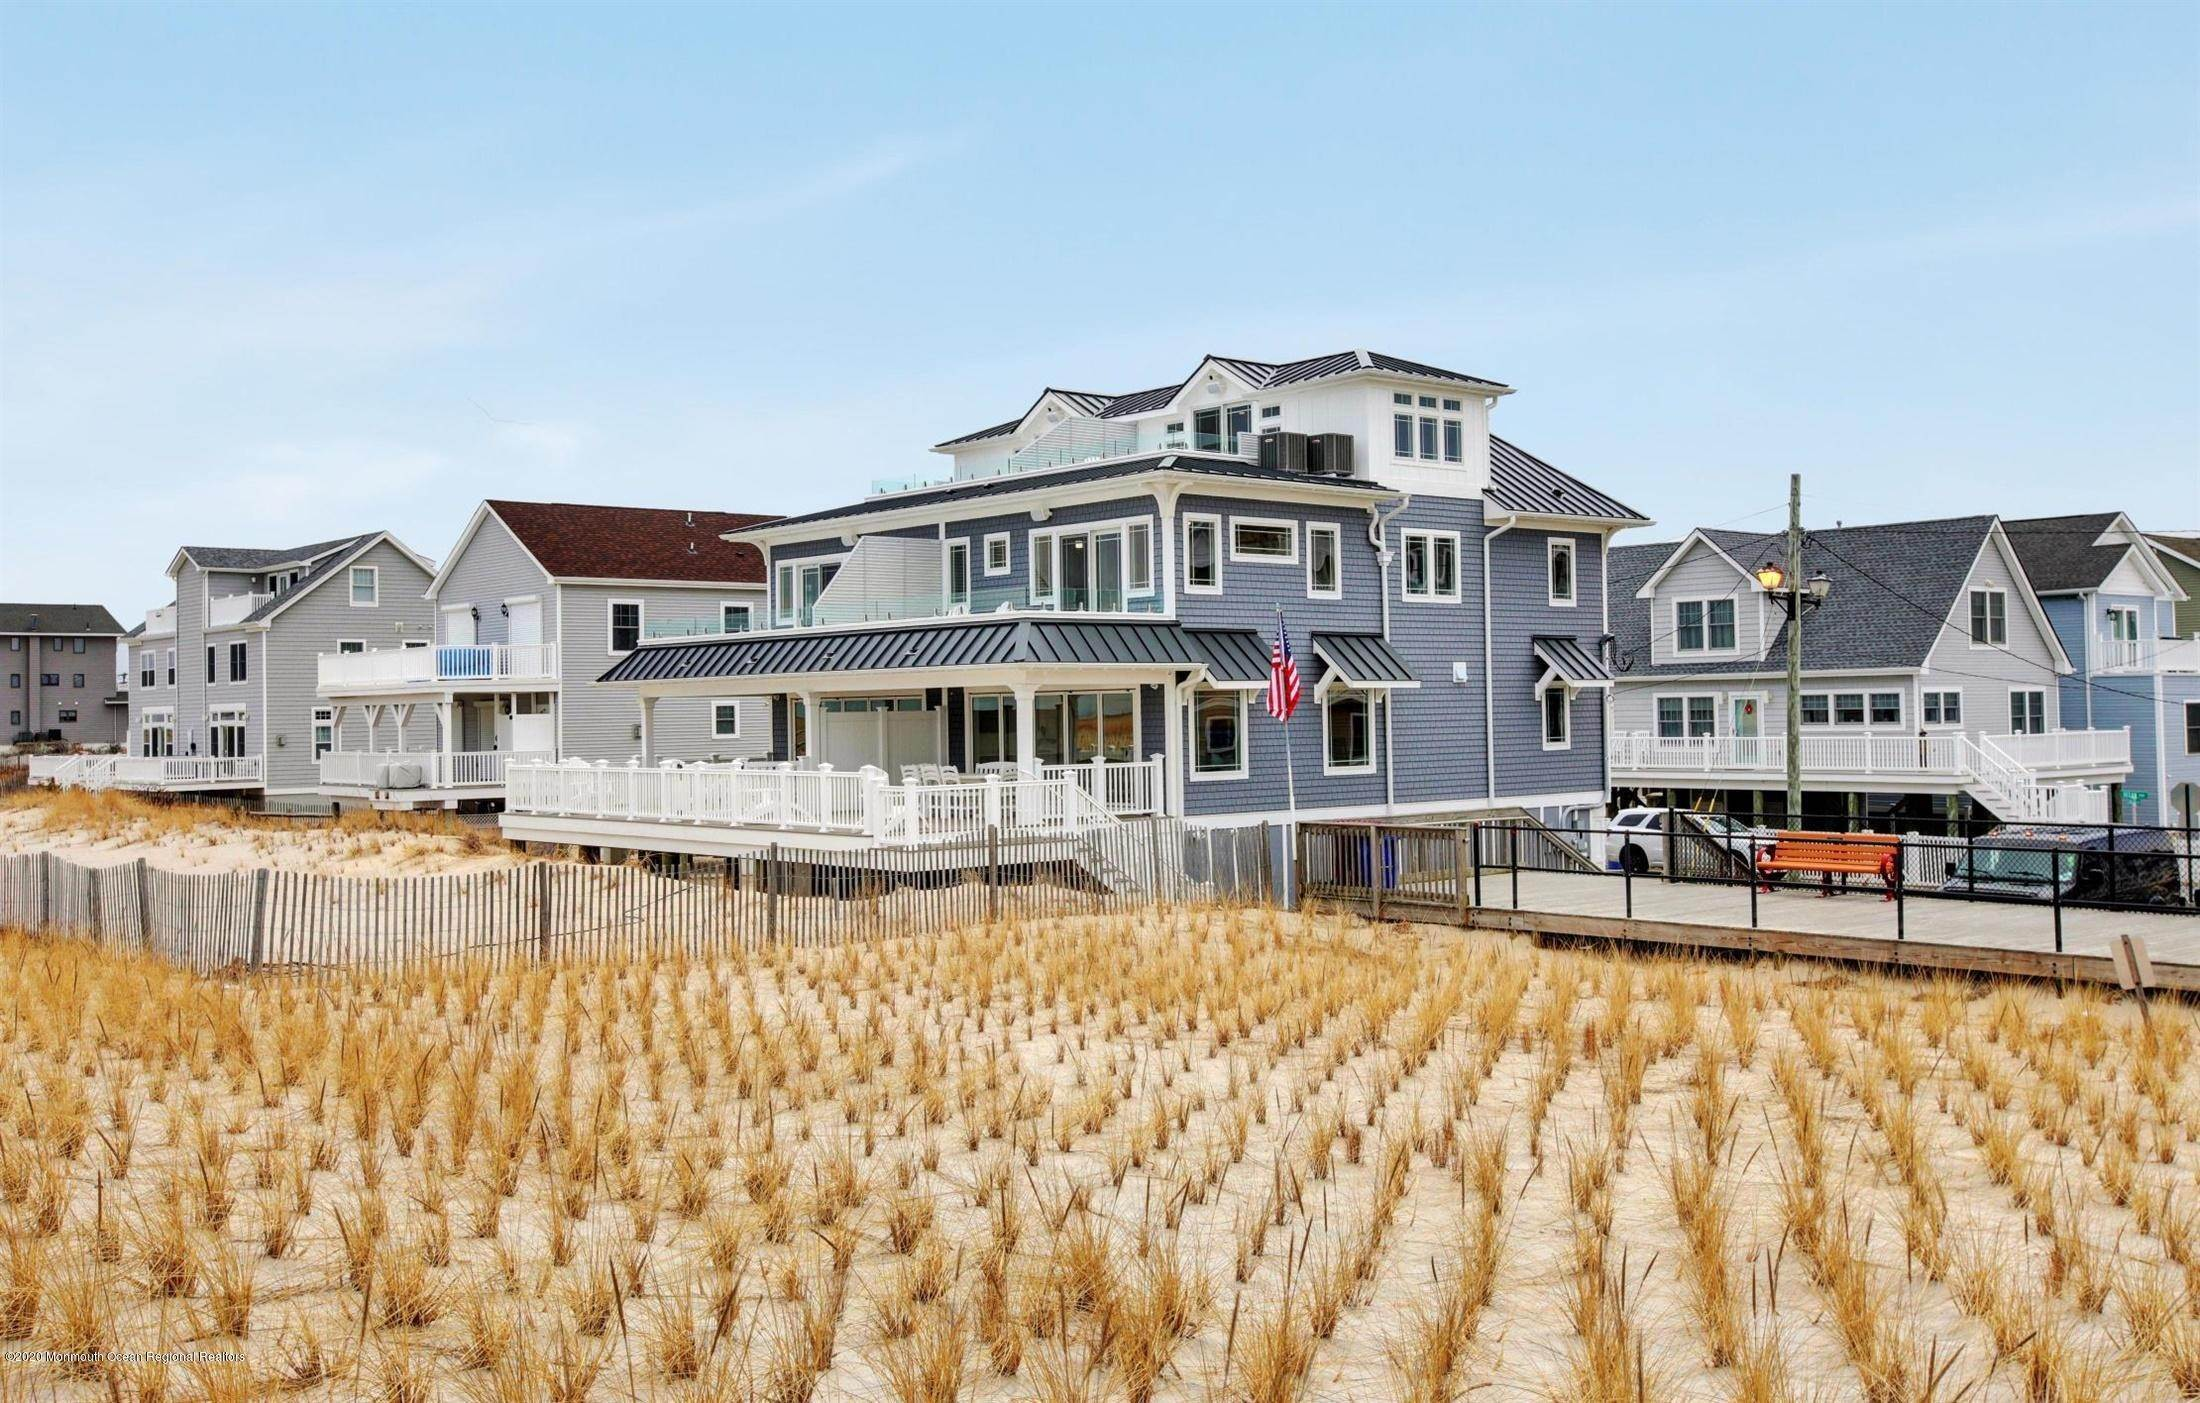 81. Single Family Home for Rent at 1728 Oceanfront Ortley Beach, New Jersey, 08751 United States